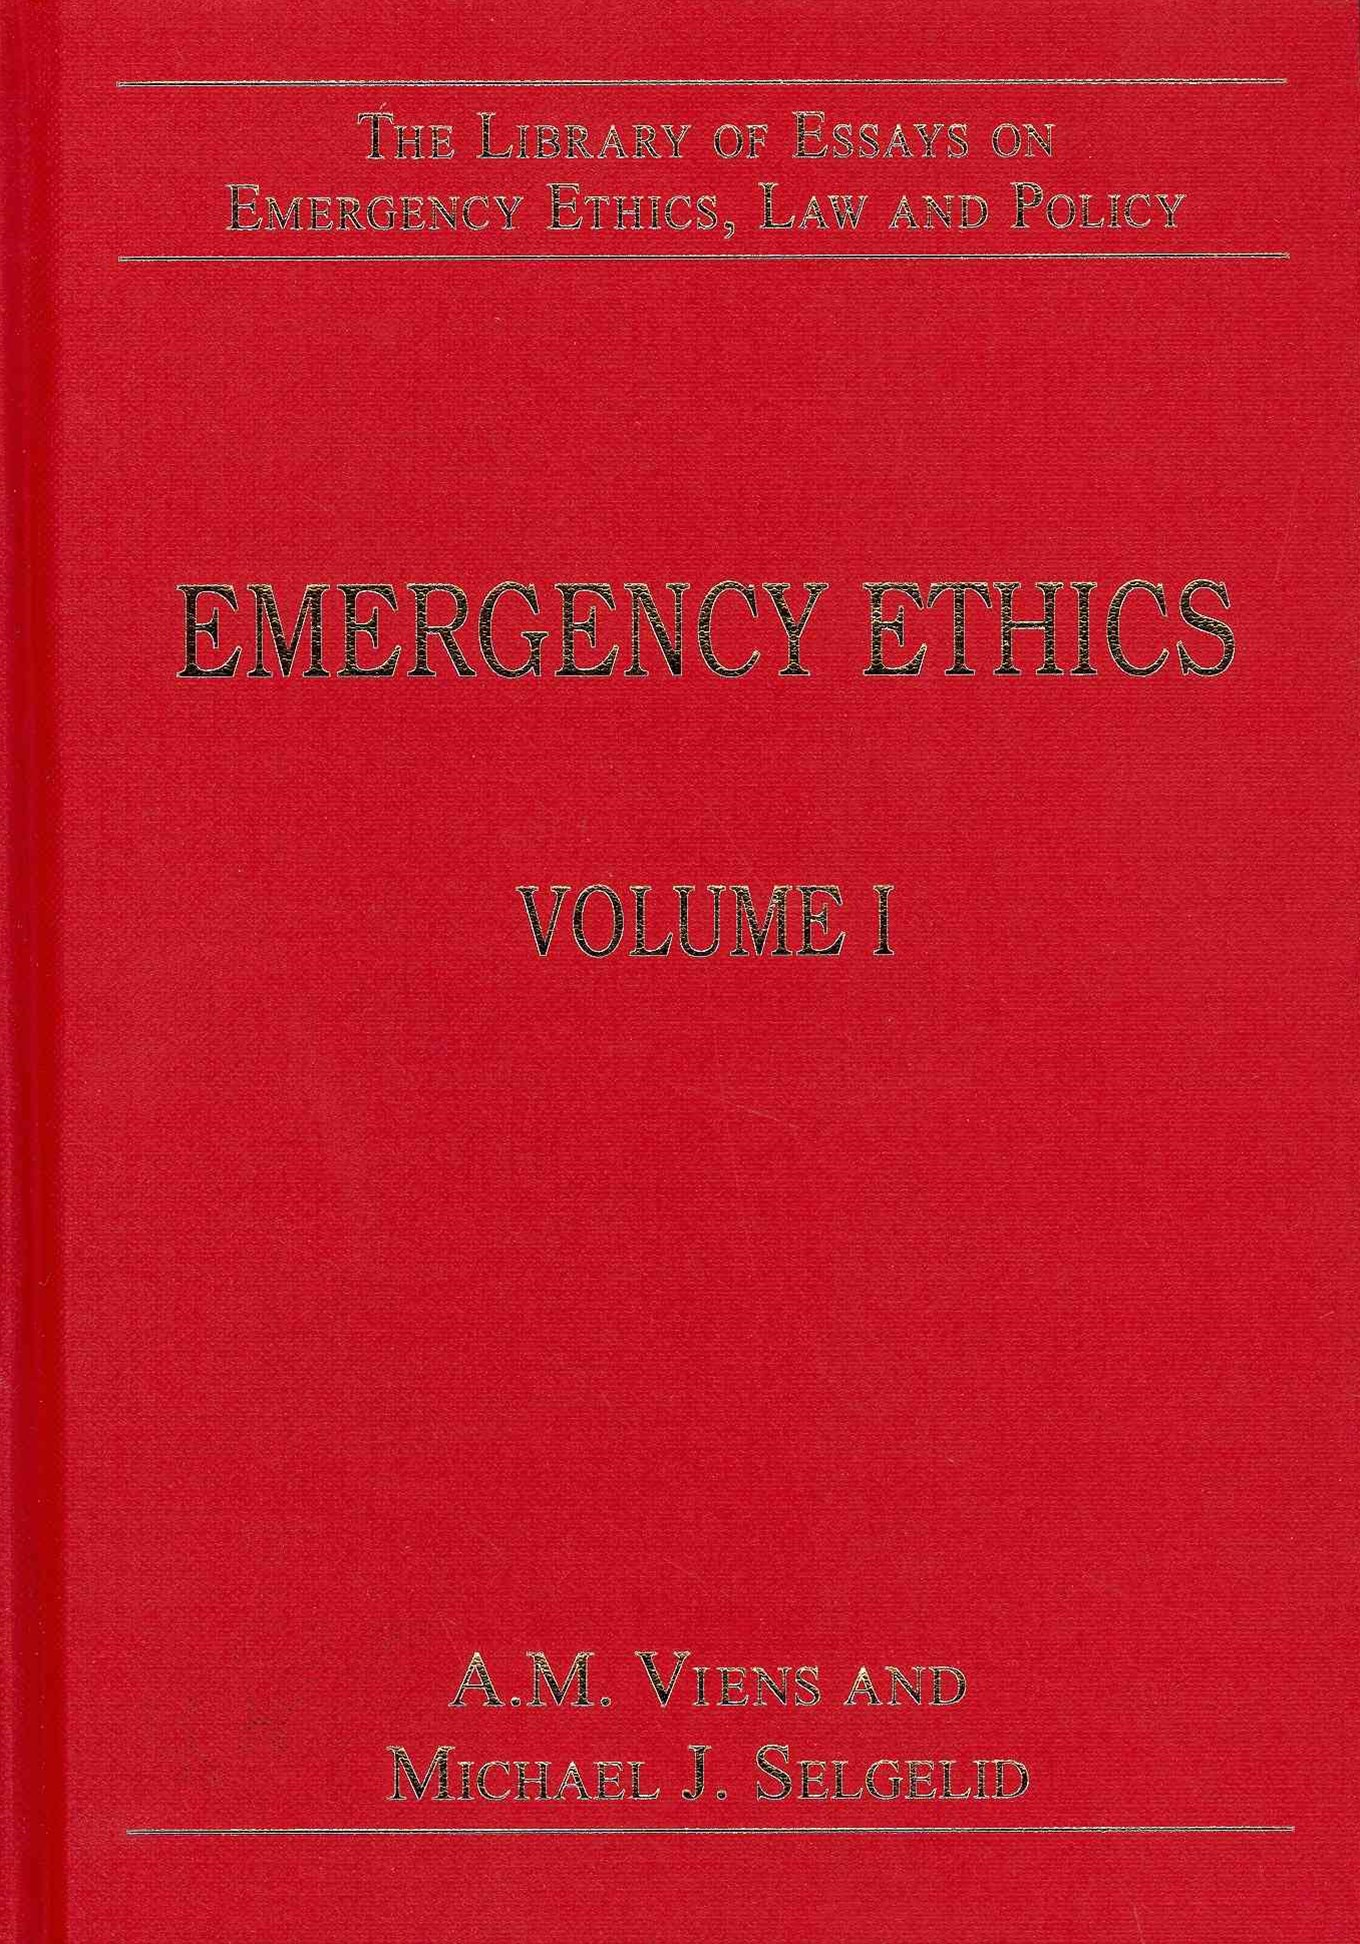 Library of Essays on Emergency Ethics, Law and Policy